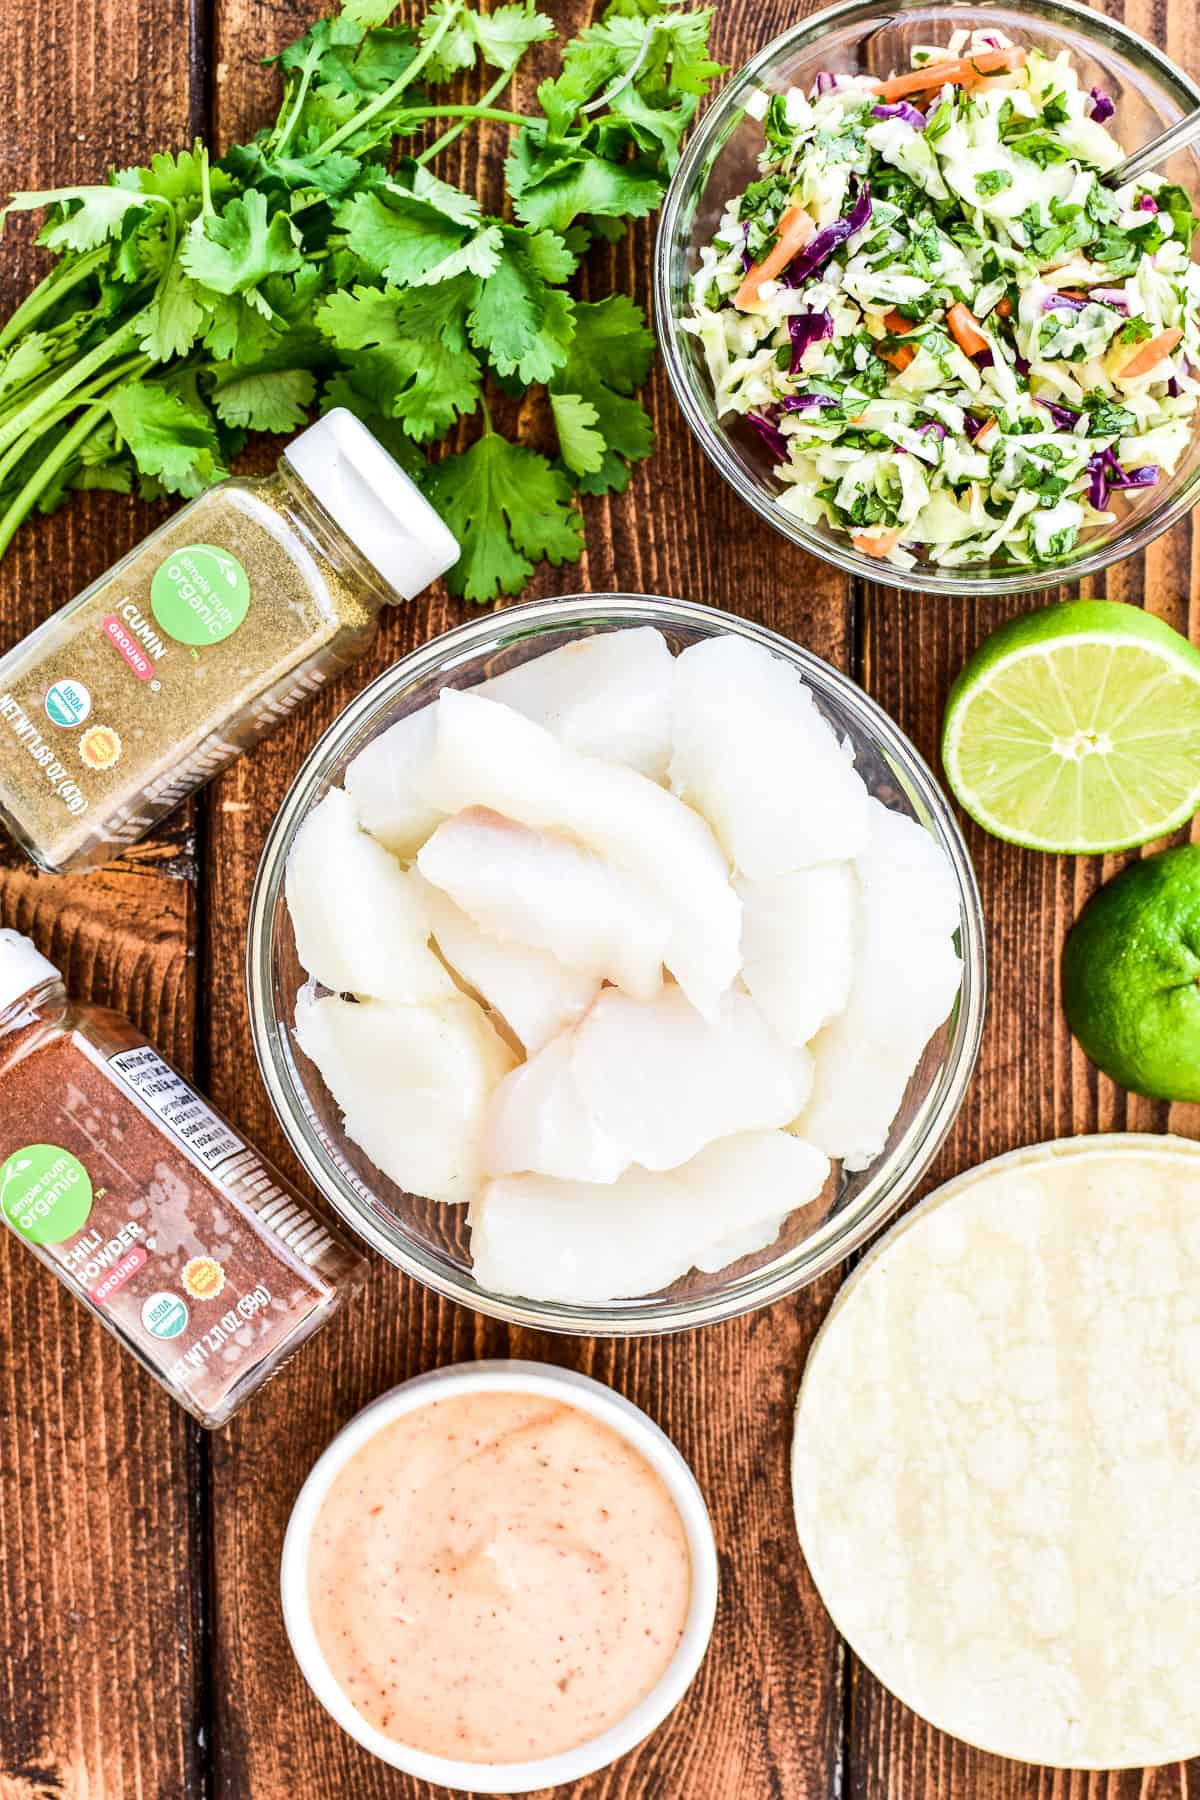 Ingredients for Baja Fish Tacos